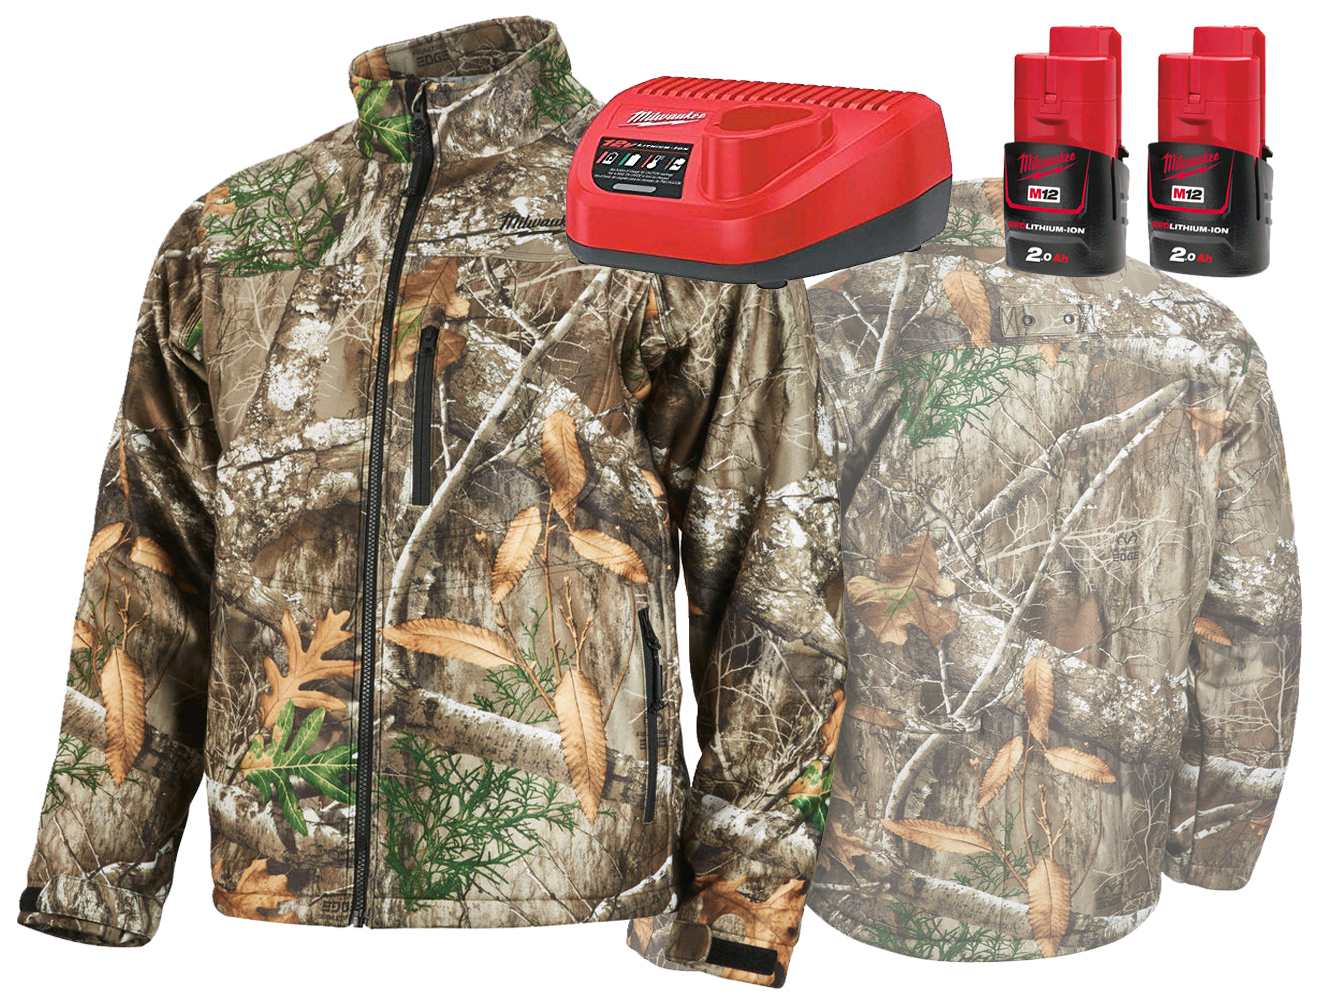 MILWAUKEE 12V CAMOUFLAGE (CAMO) PREMIUM HEATED JACKET - GEN5 - L - 2.0AH PACK